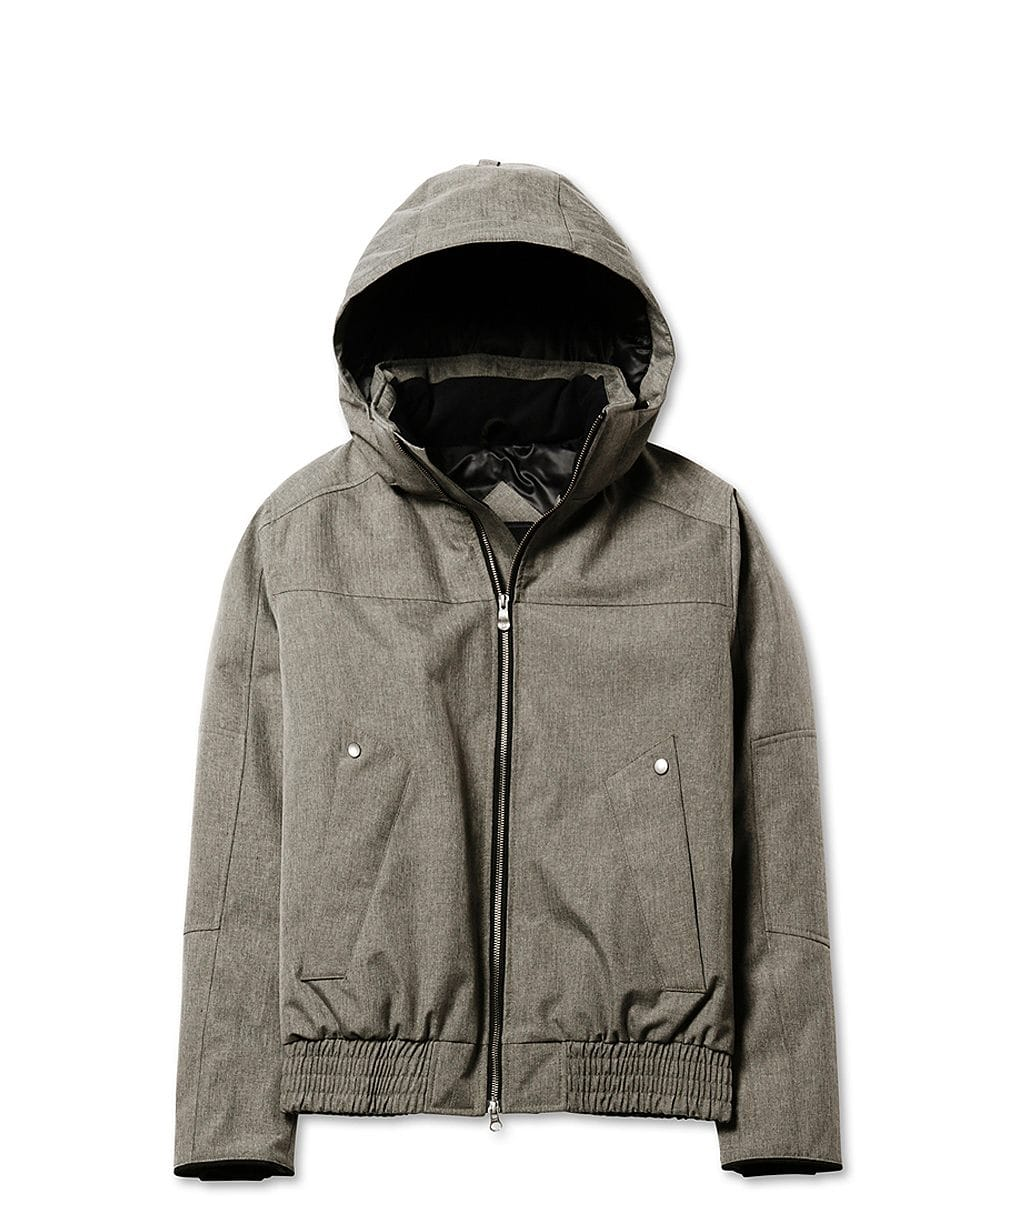 ROSSLAND BOMBER BLACK LABEL